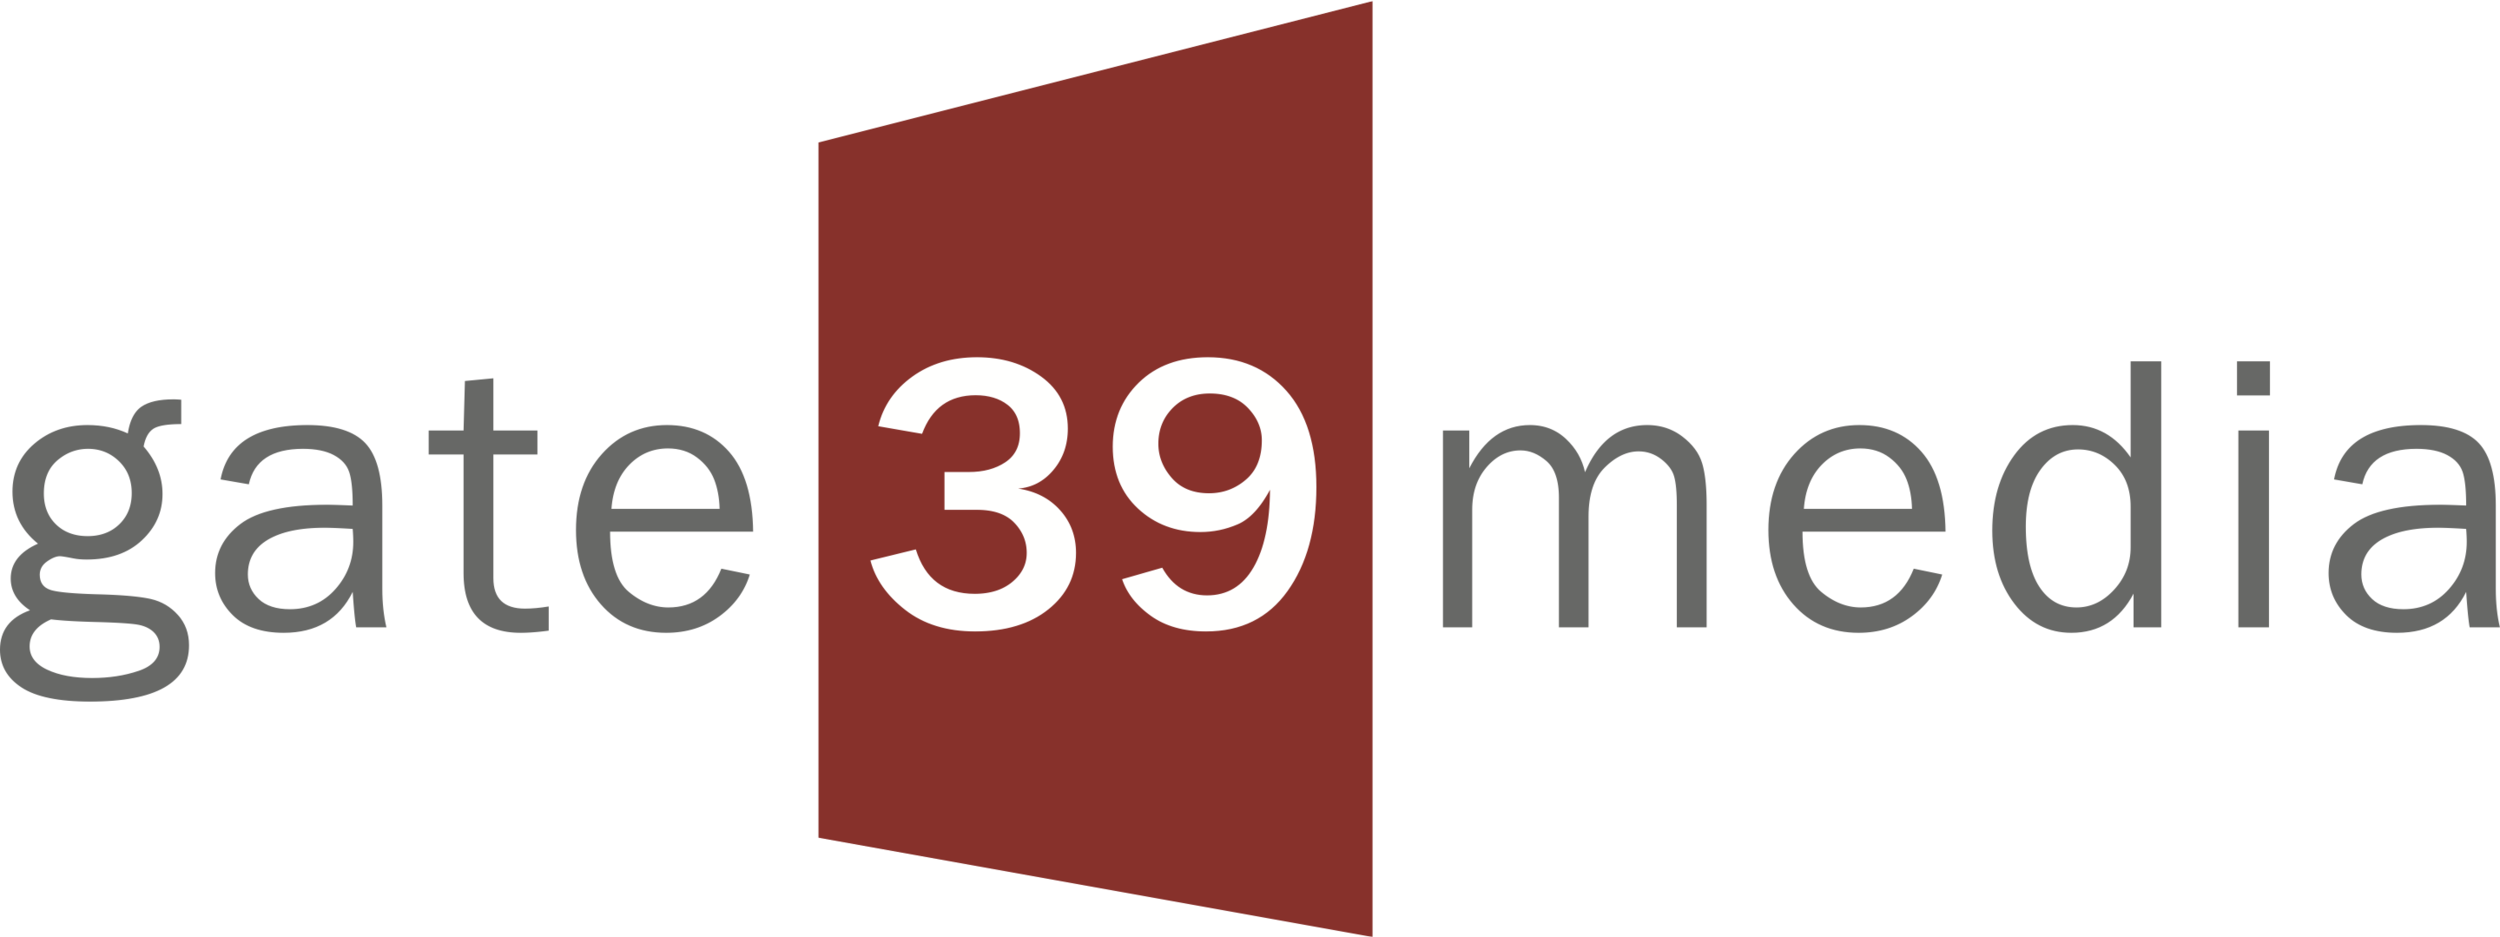 gate39media-logo.png